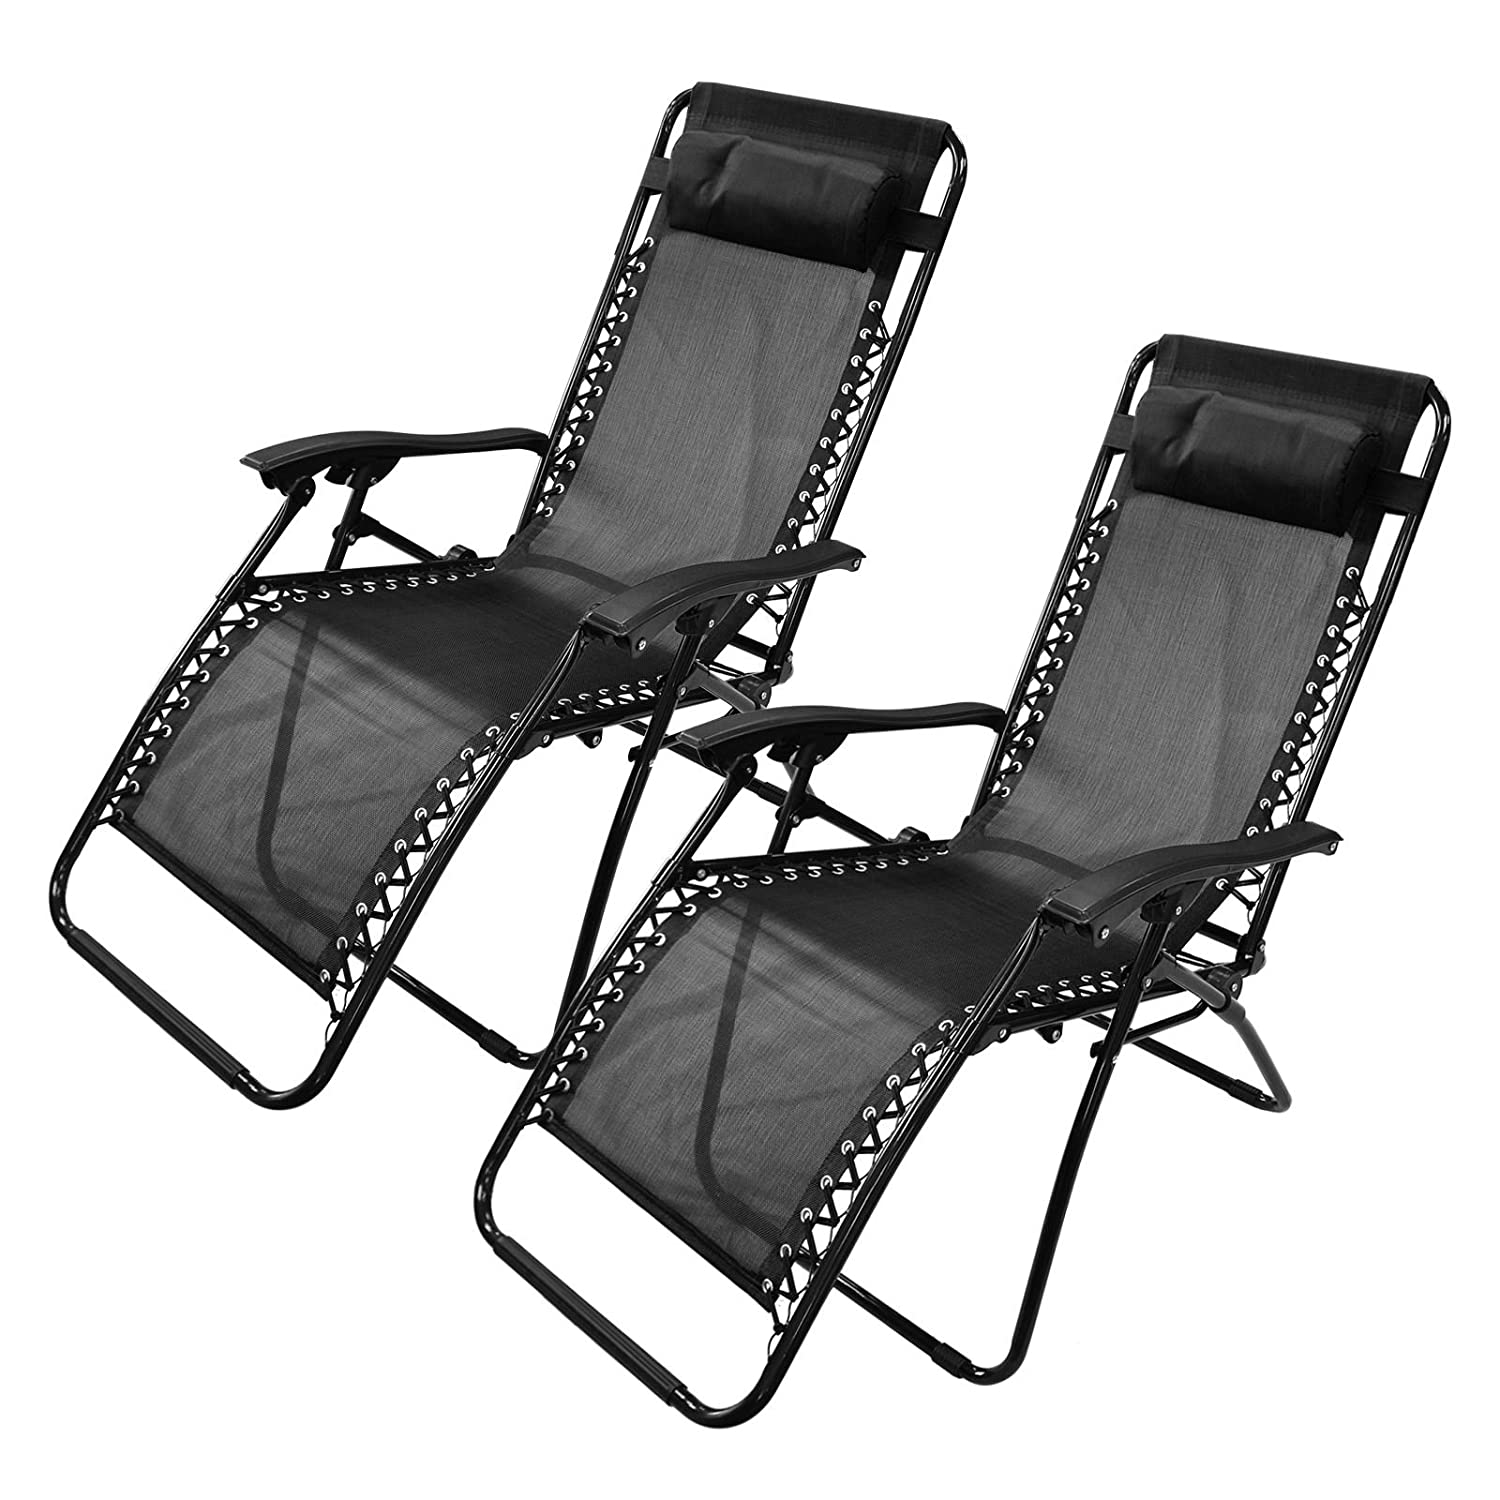 ASAB Heavy Duty Textoline Zero Gravity Deck Chair Recliner - Weatherproof Powder Coated Steel Frame and Mesh Bed Fabric - Beach Folding Sun Lounger Outdoor Garden Patio Conservatory - Black - 1 Chair